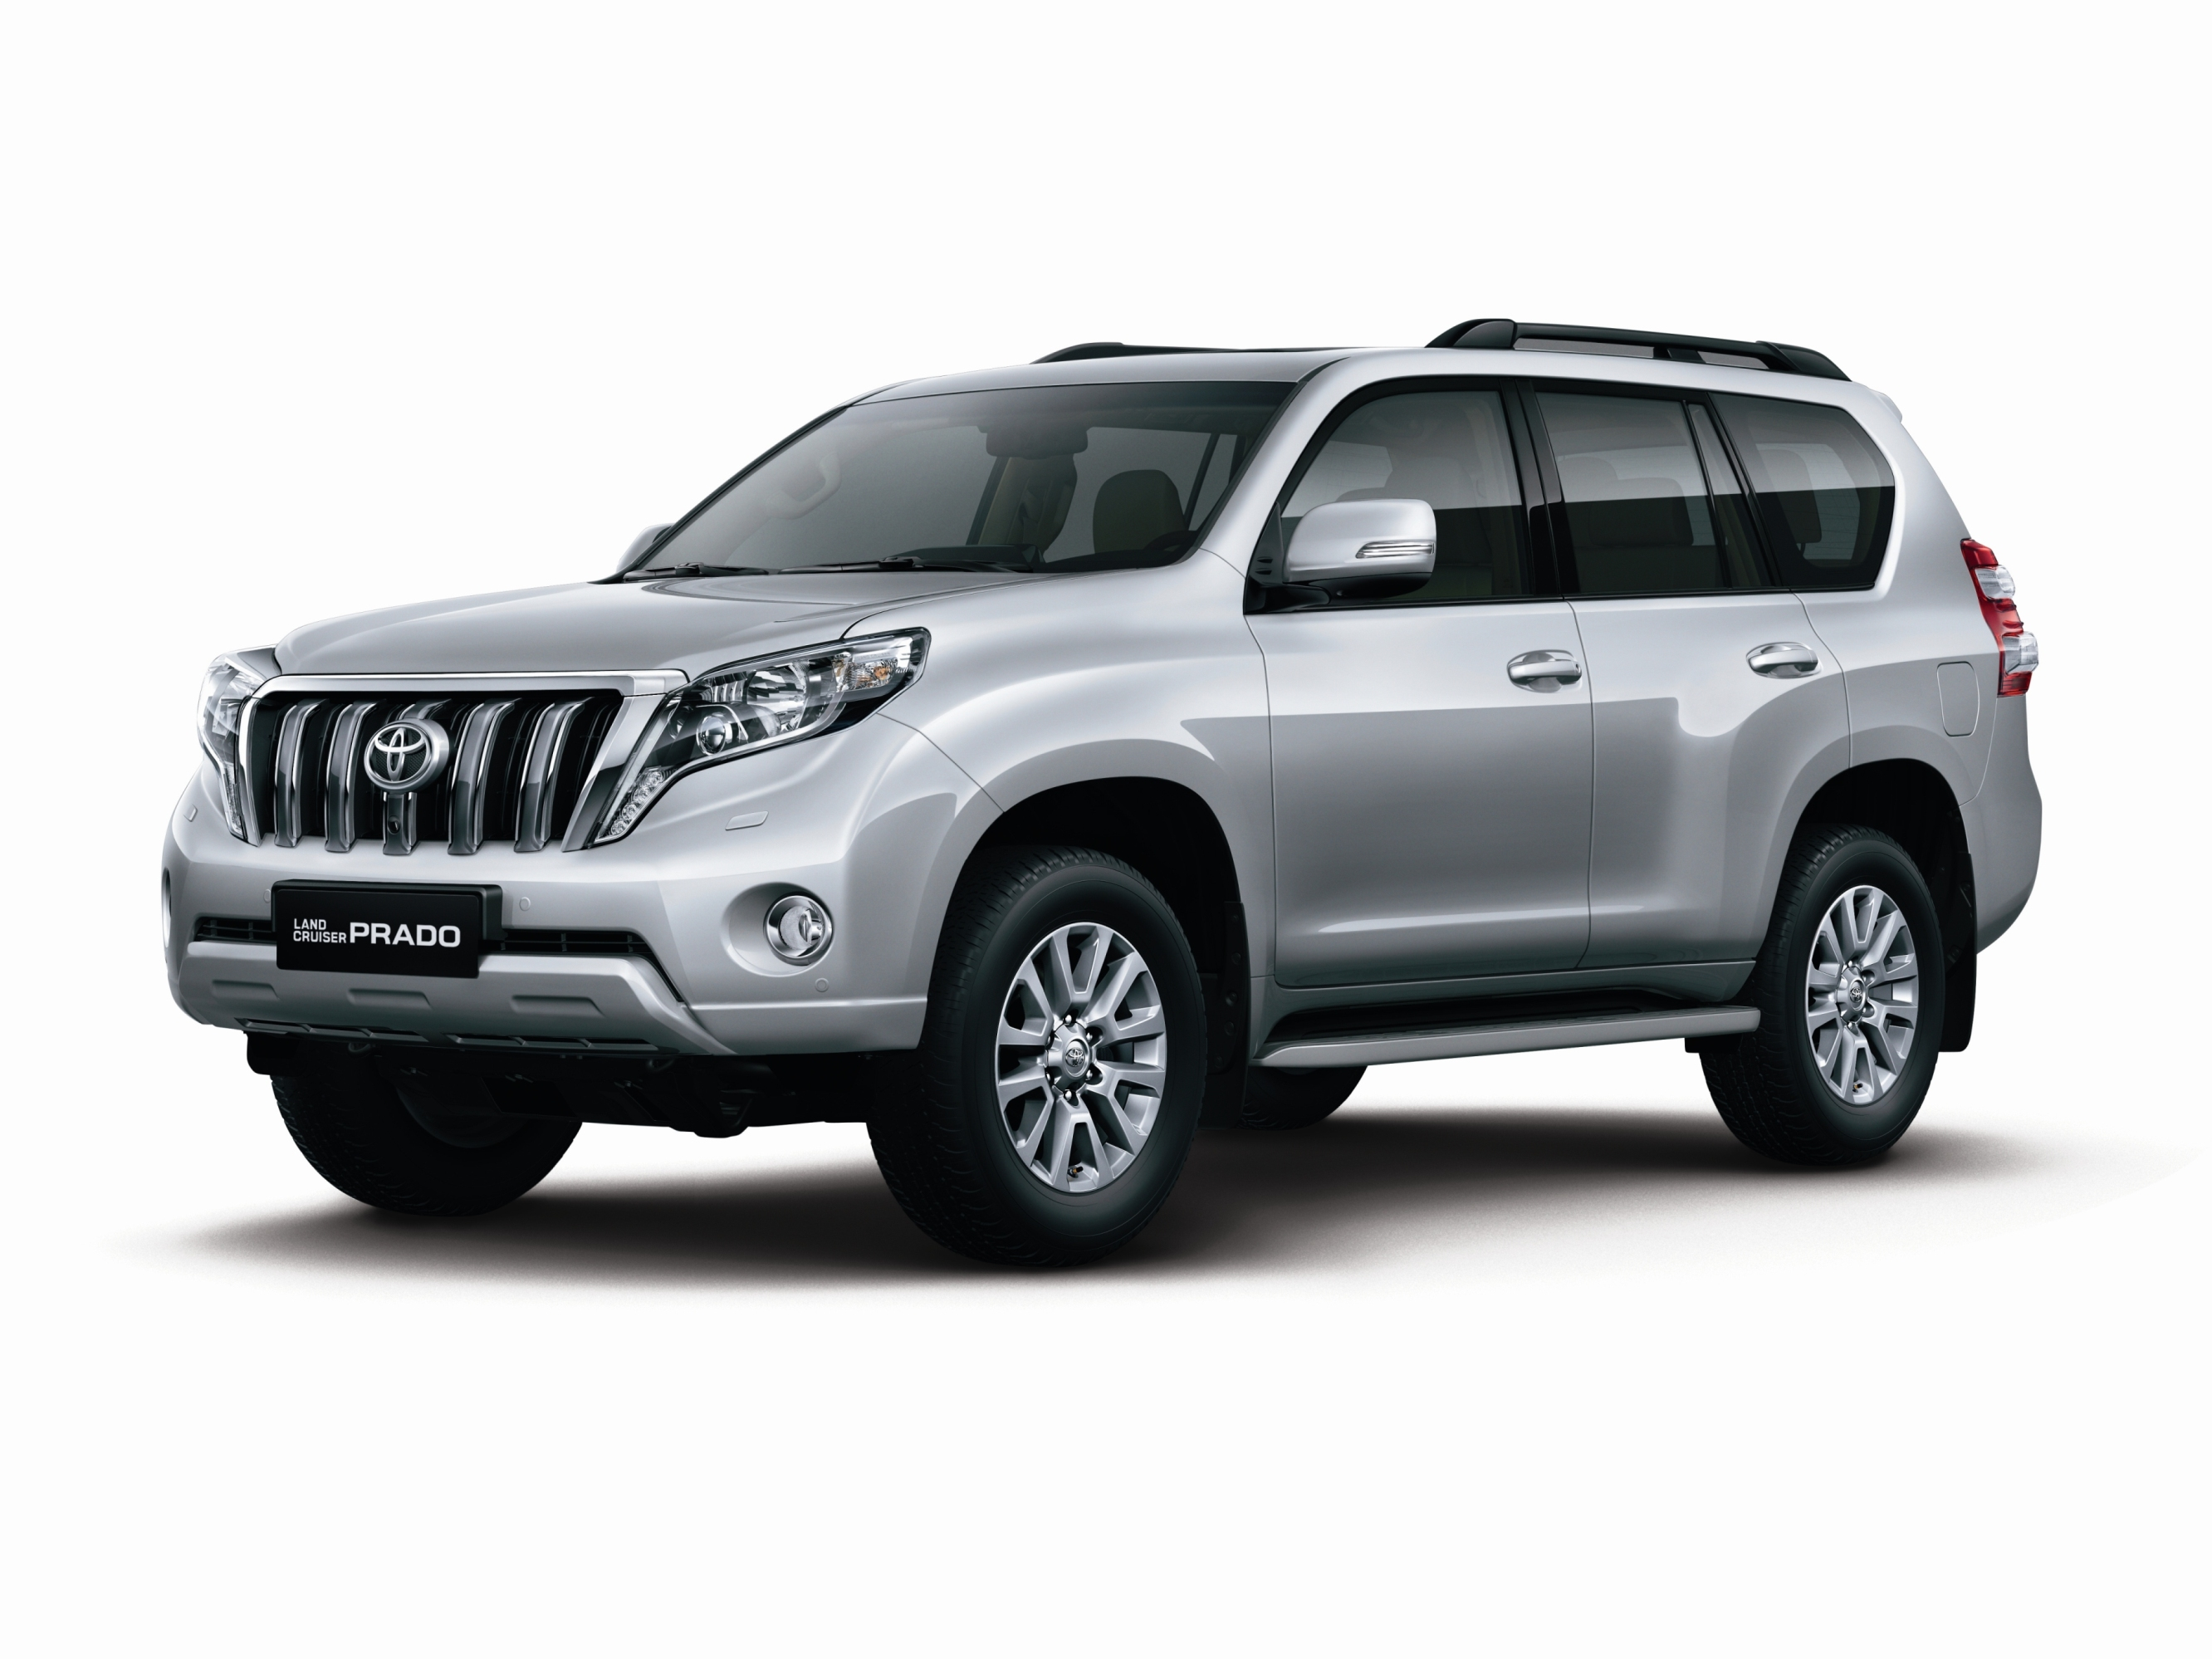 new toyota land cruiser prado launched at rs lakh car news premium luxury suvs. Black Bedroom Furniture Sets. Home Design Ideas